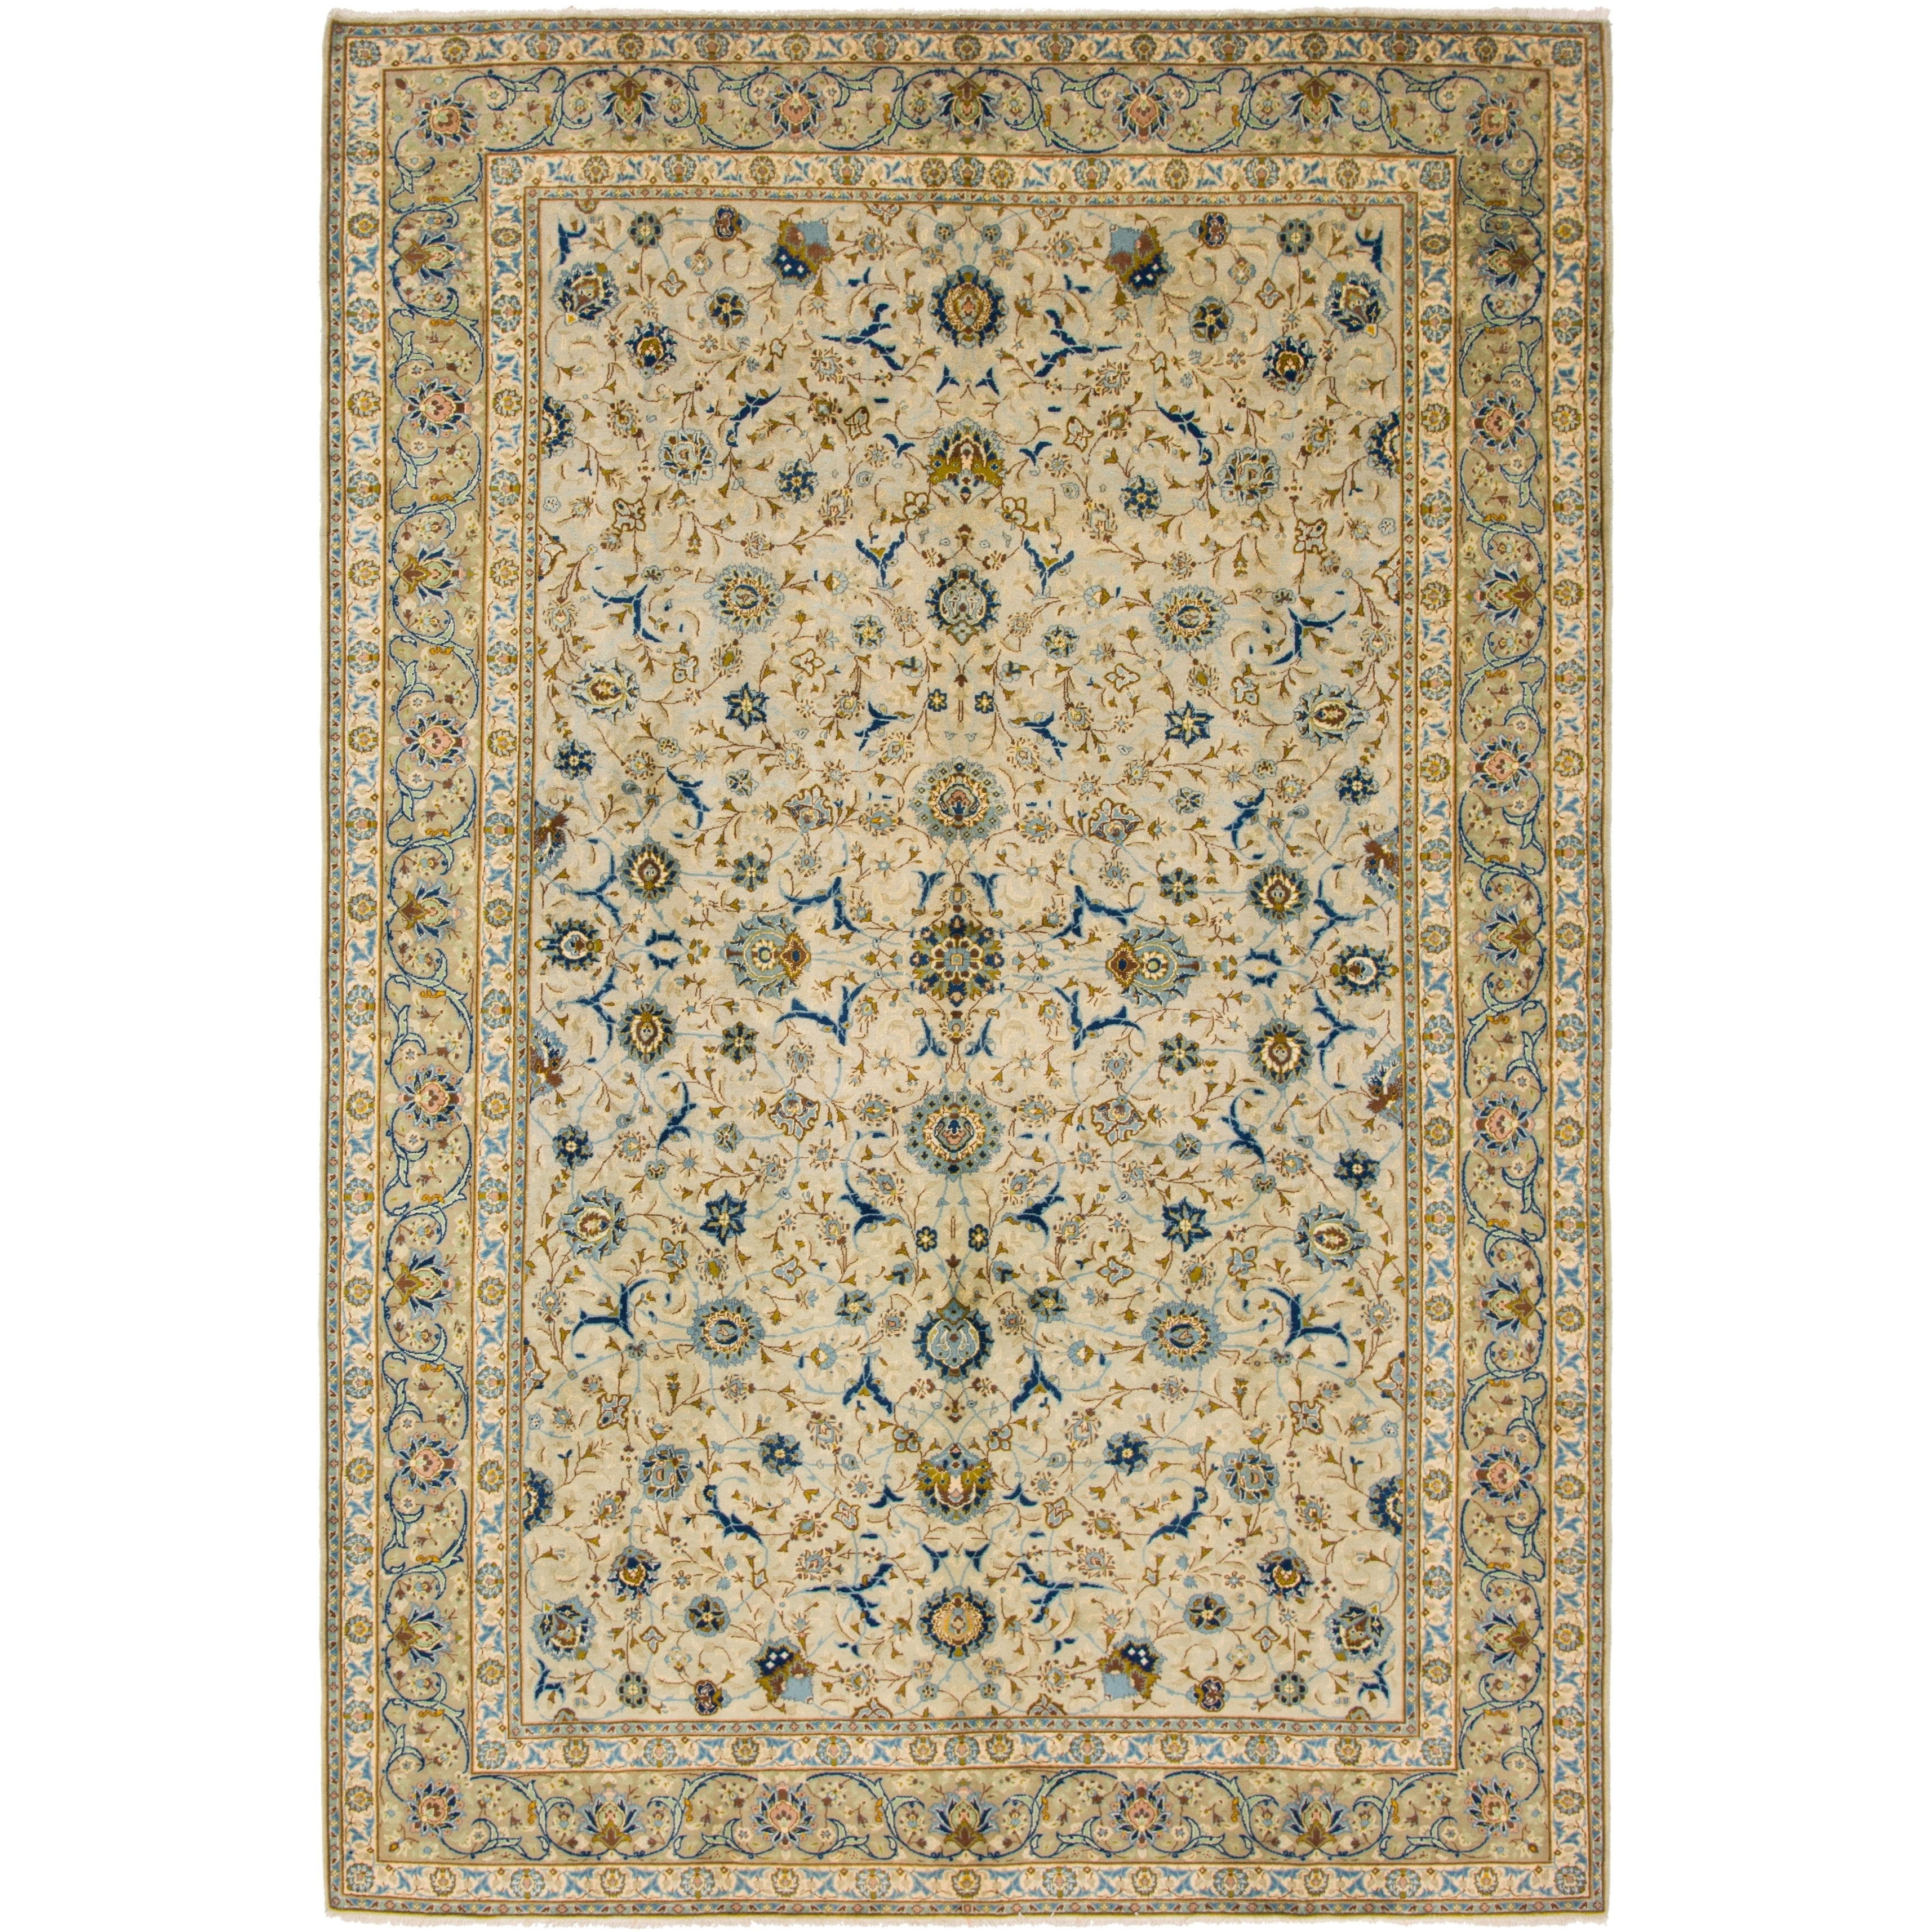 Hand Knotted Kashan Semi Antique Wool Area Rug - 8 6 x 12 9 (Beige - 8 6 x 12 9)